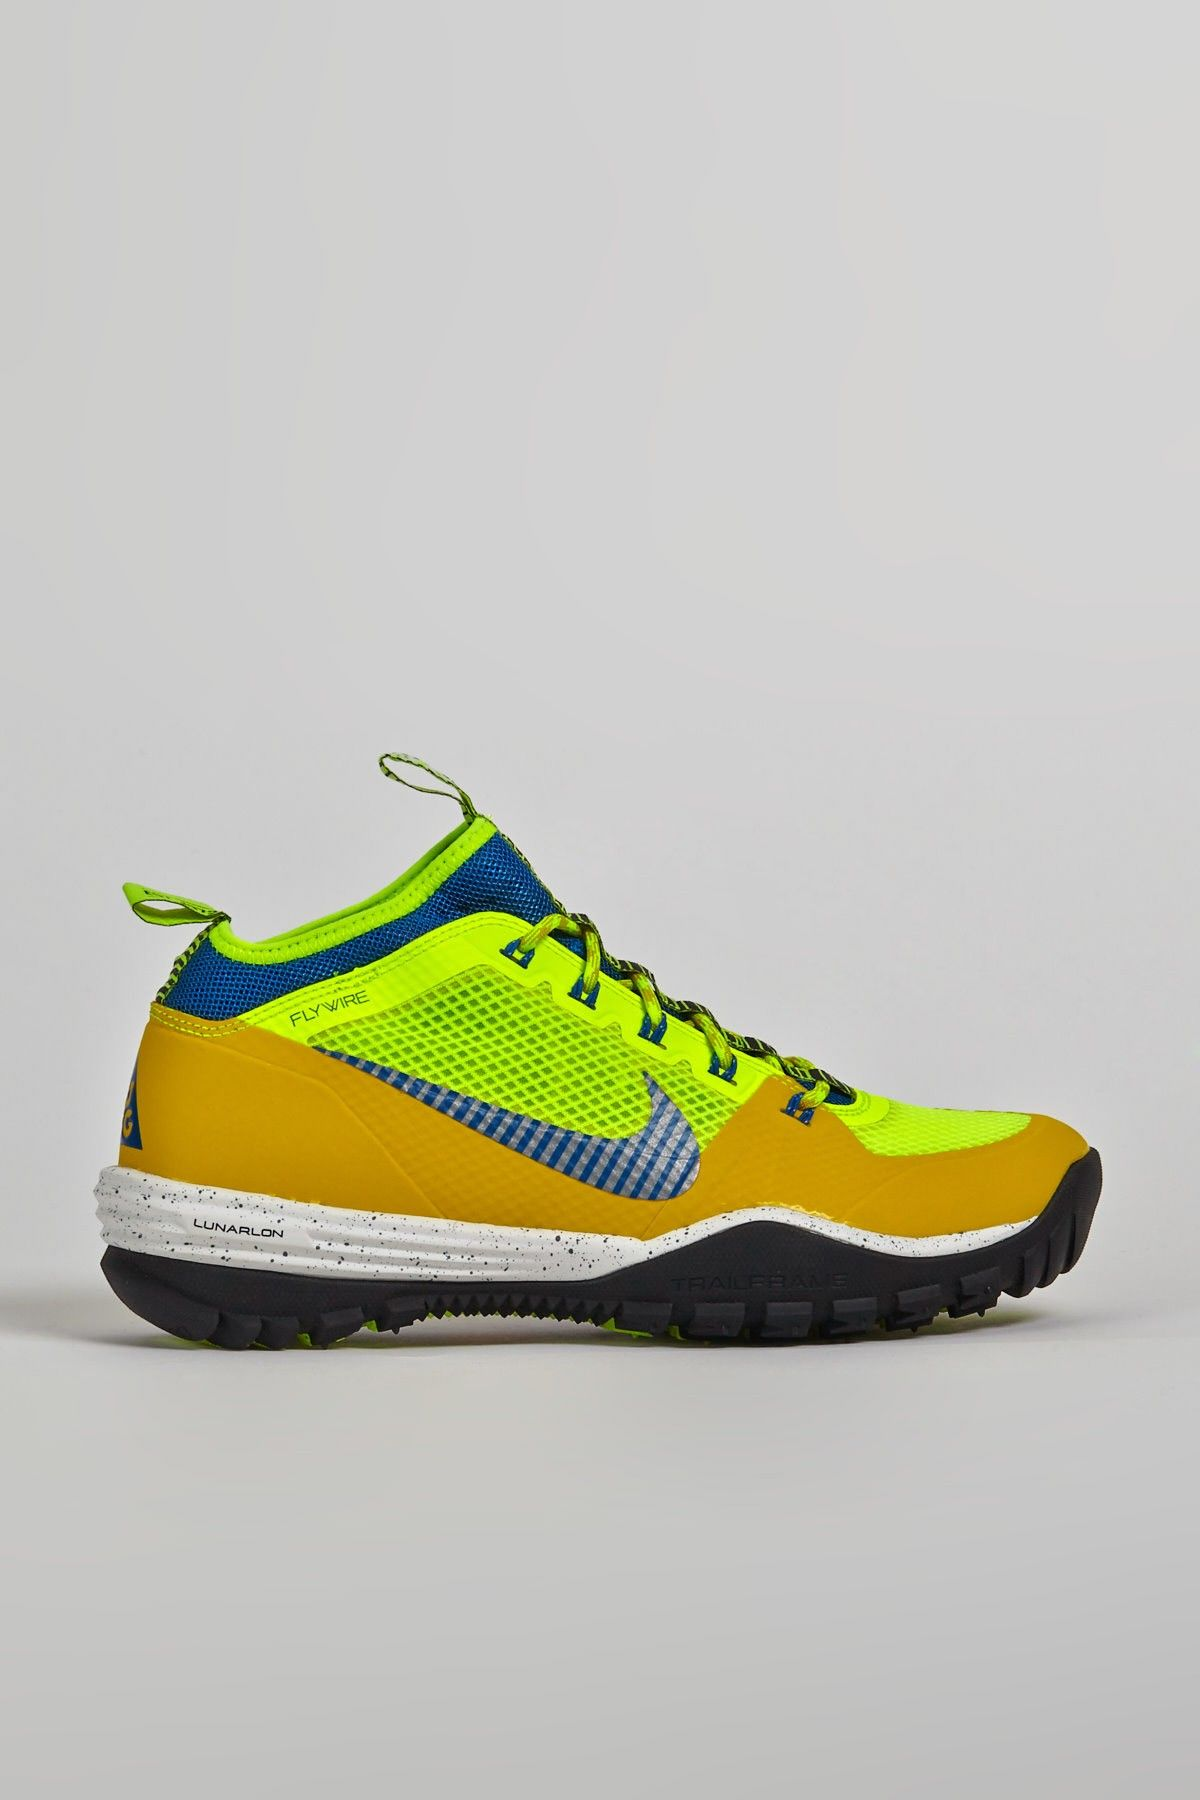 Nike Special Project Lunar Incognito Bright Citron / Military Blue-Volt -  SlamJamSocialism